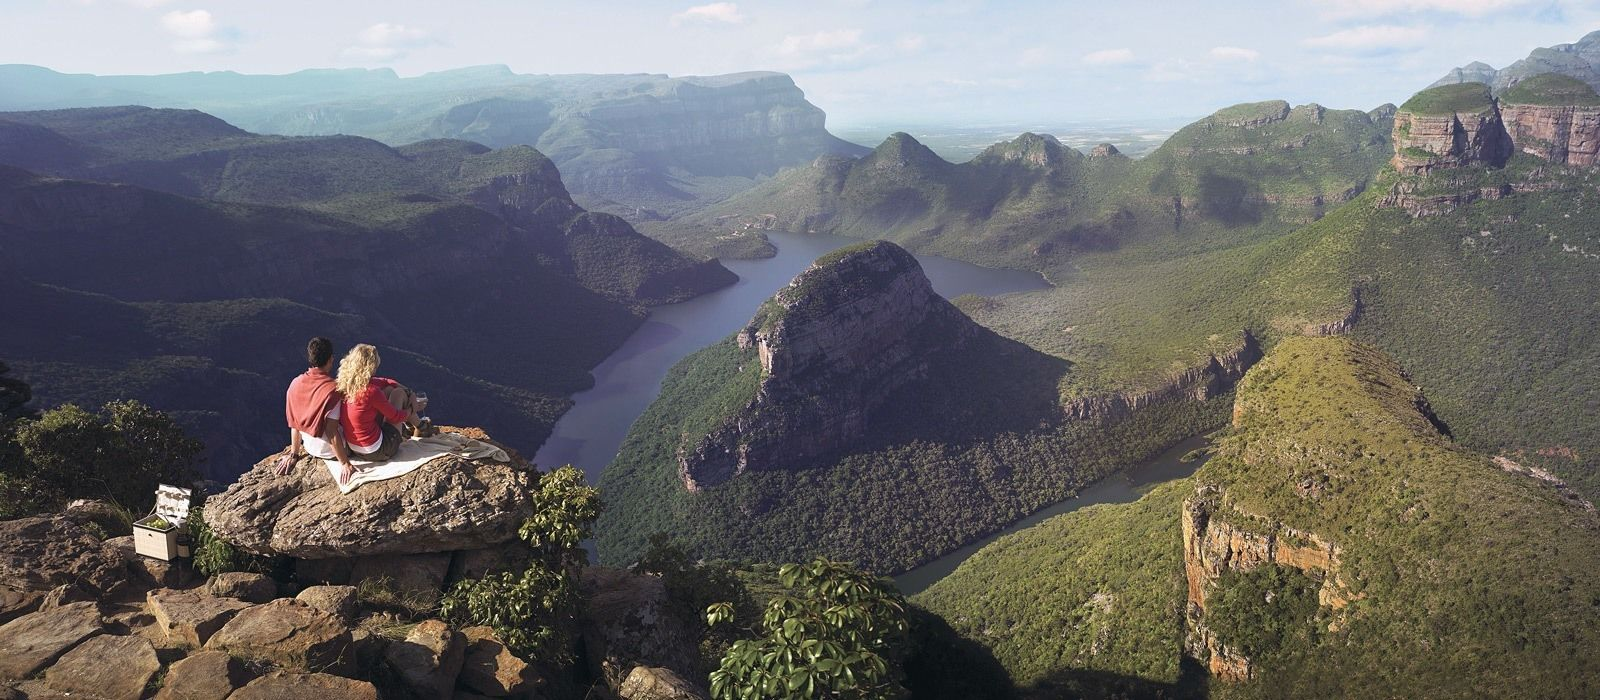 South Africa & Zambia:  Panoramaroute, Kruger & Victoria Falls Tour Trip 1